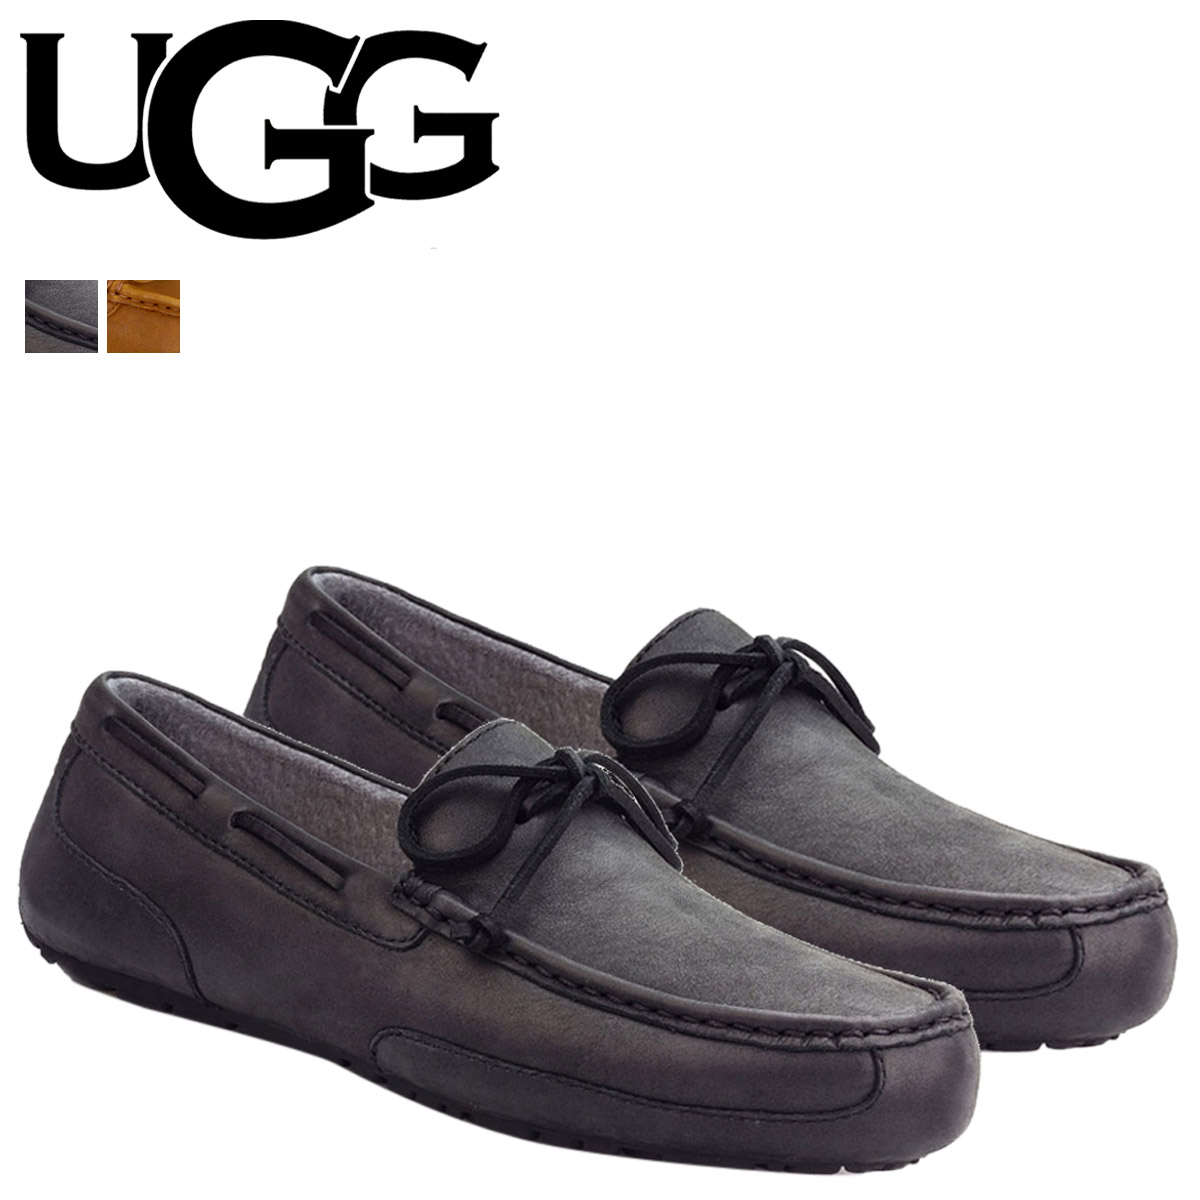 2d079b524e1377 Whats up Sports: UGG UGG mens moccasins in Chester deck shoes MENS ...